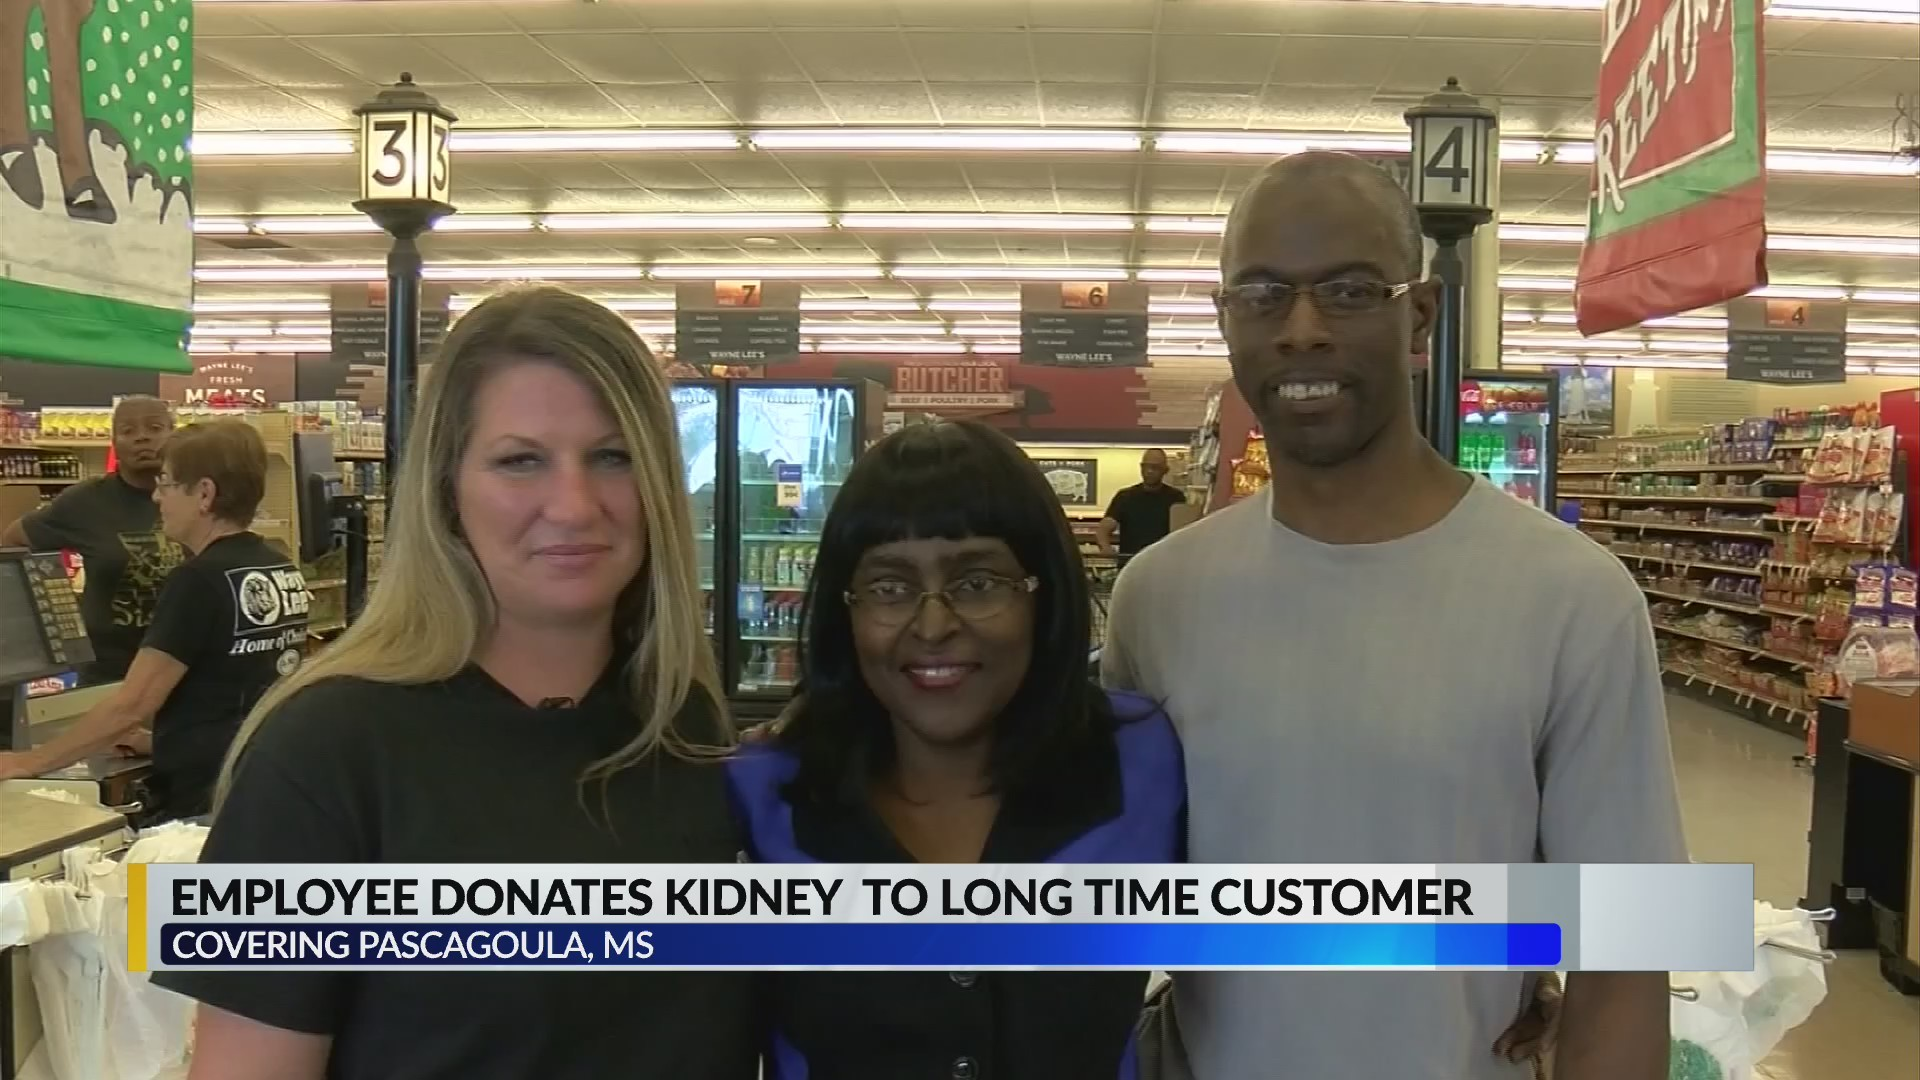 Employee_donates_kidney_to_long_time_cus_0_20190104033855